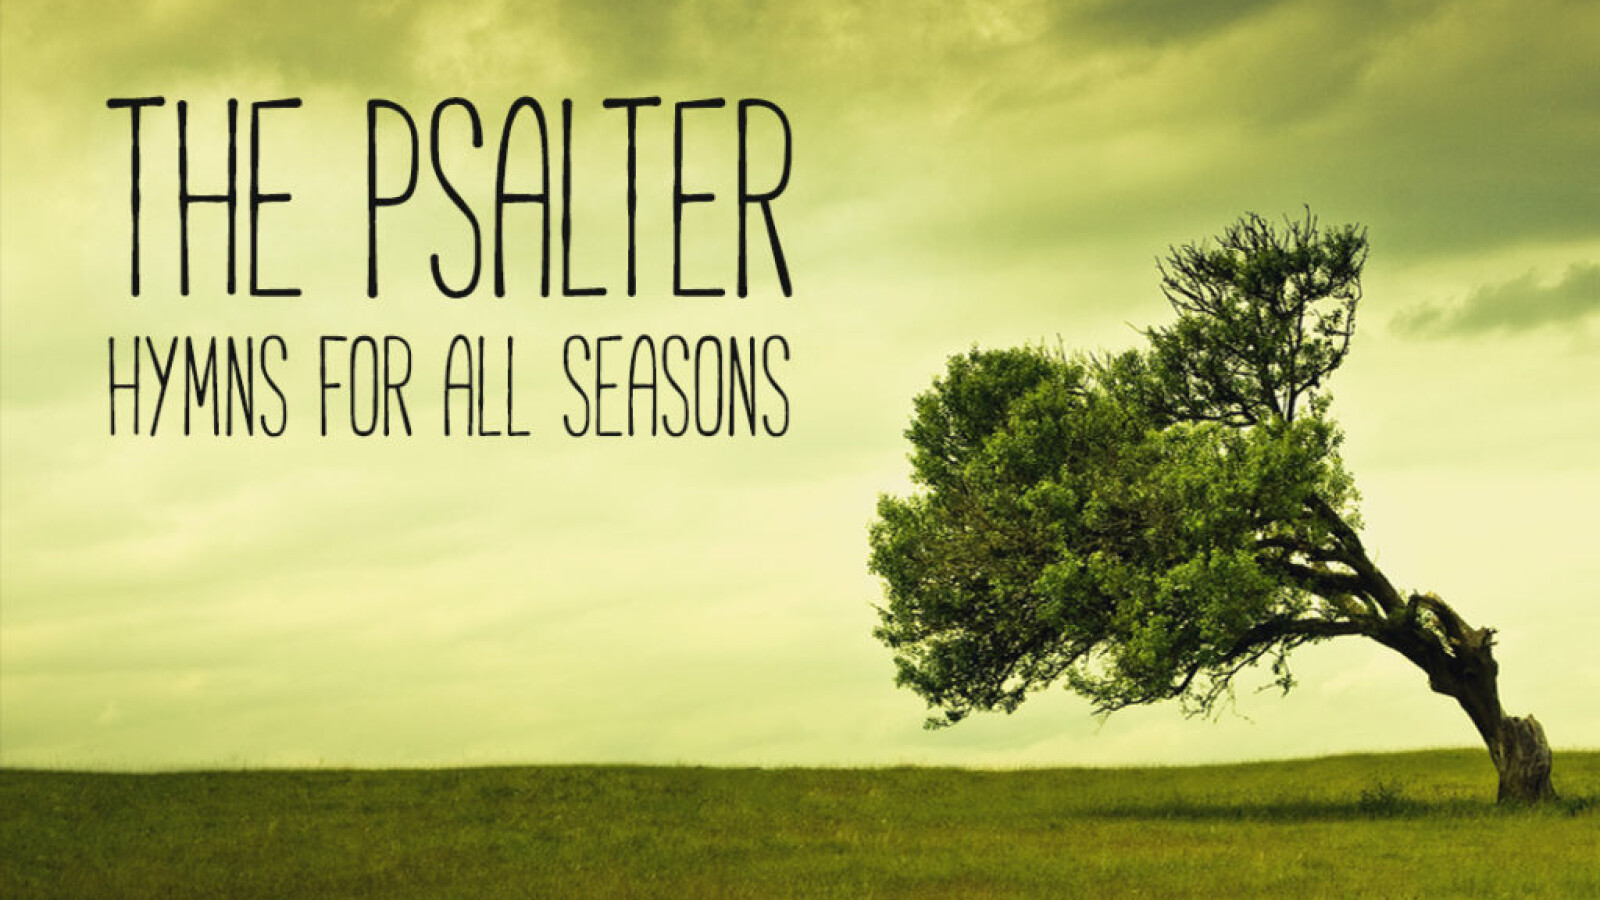 The Psalter: Hymns for All Seasons